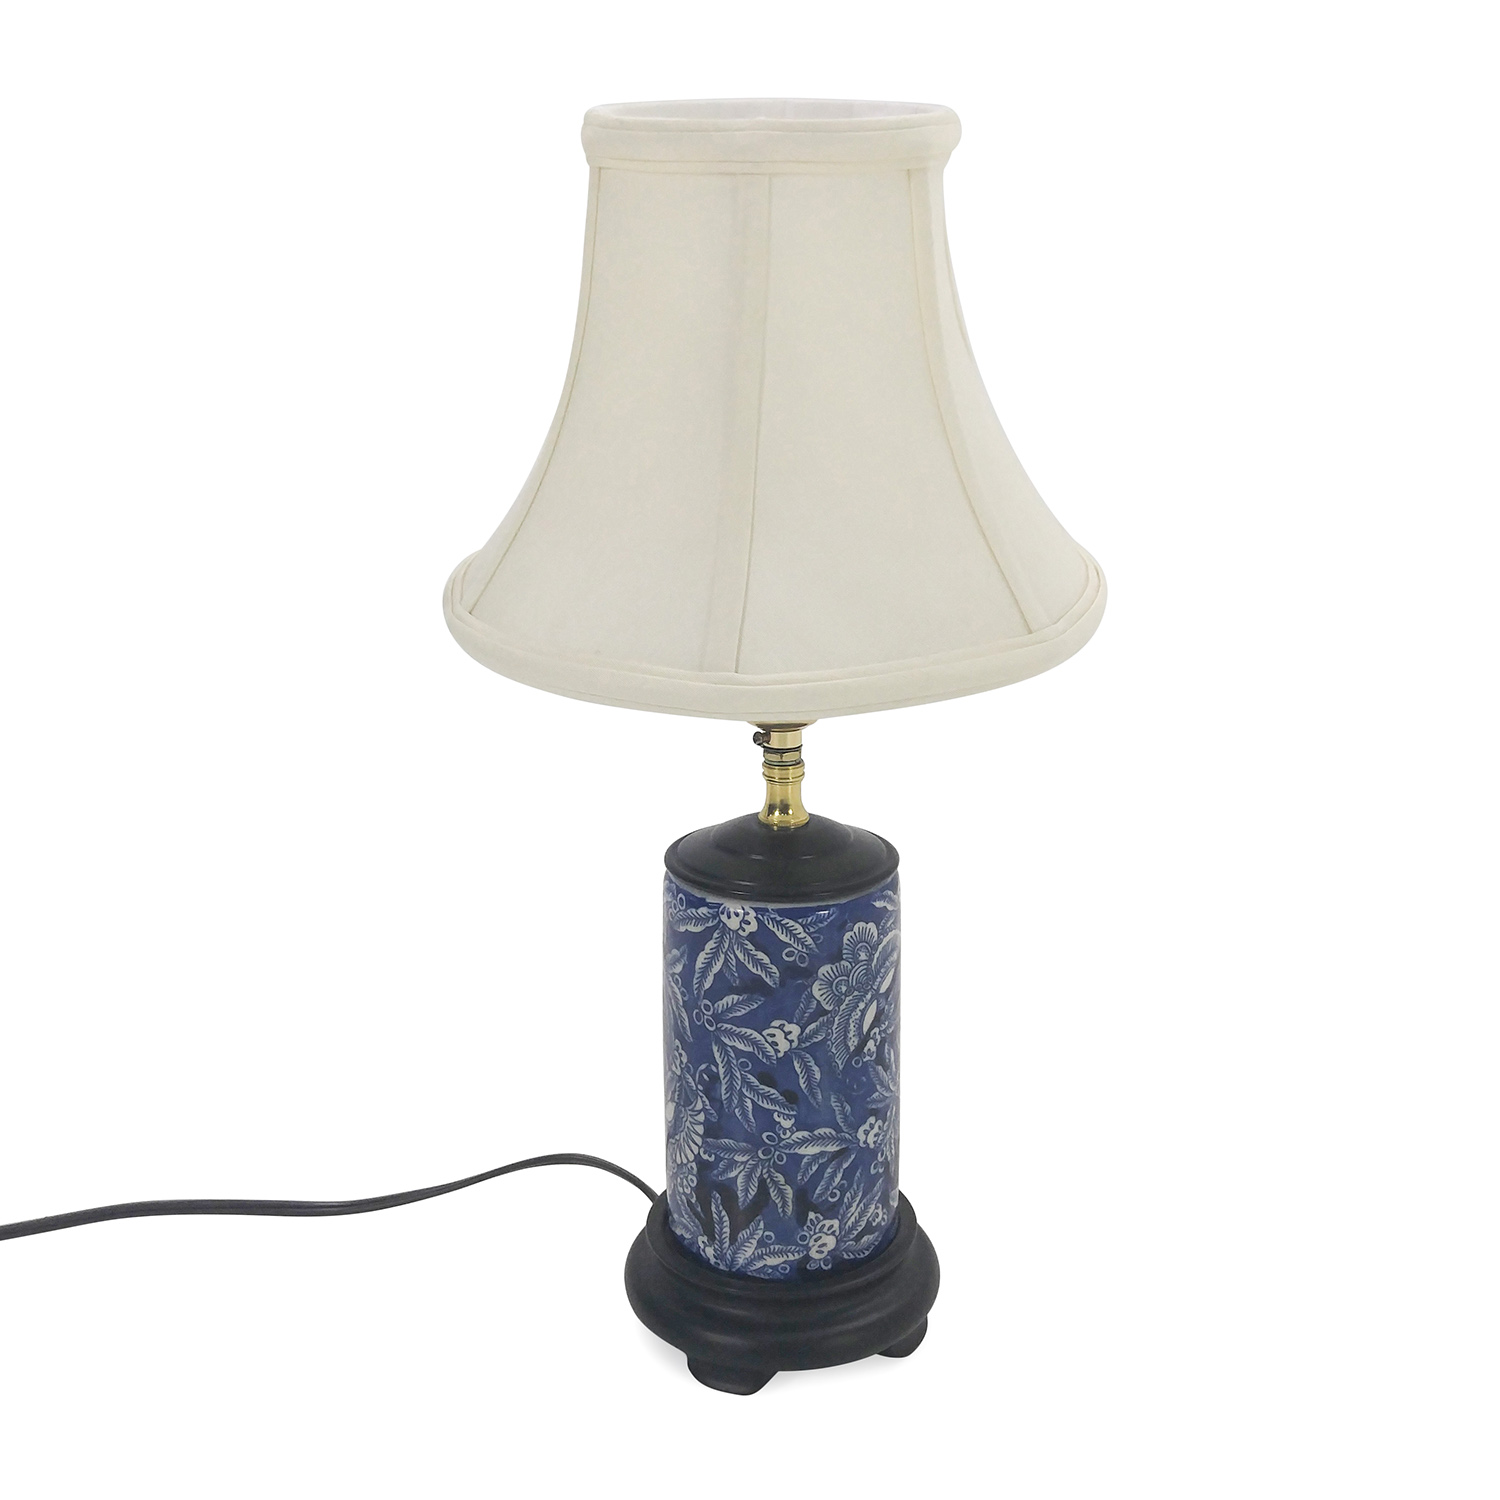 Unknown Brand Small Table Lamp price